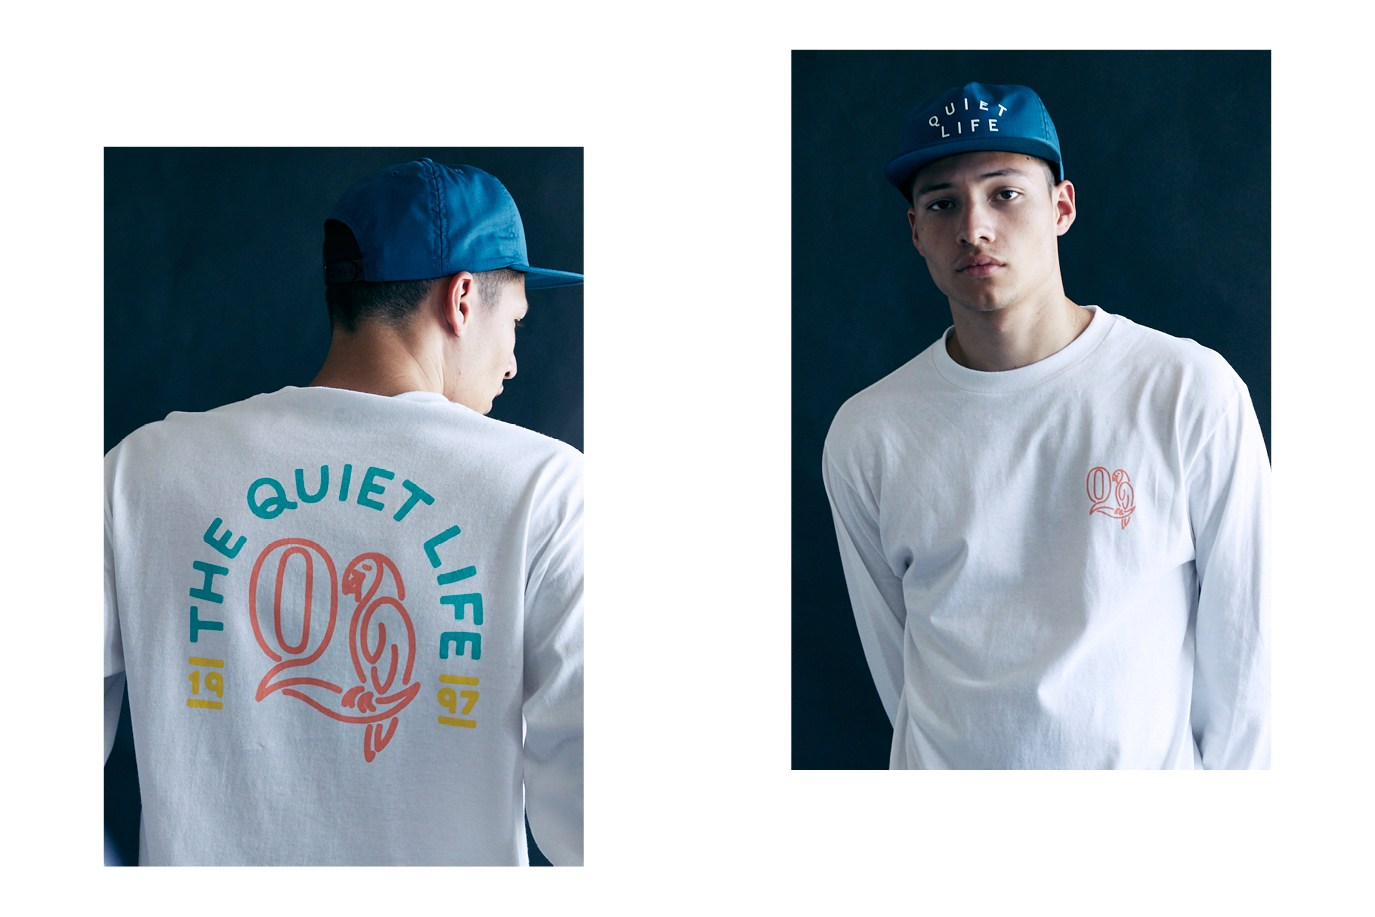 the-quiet-life-2016-spring-drop-2-lookbook-19.jpg